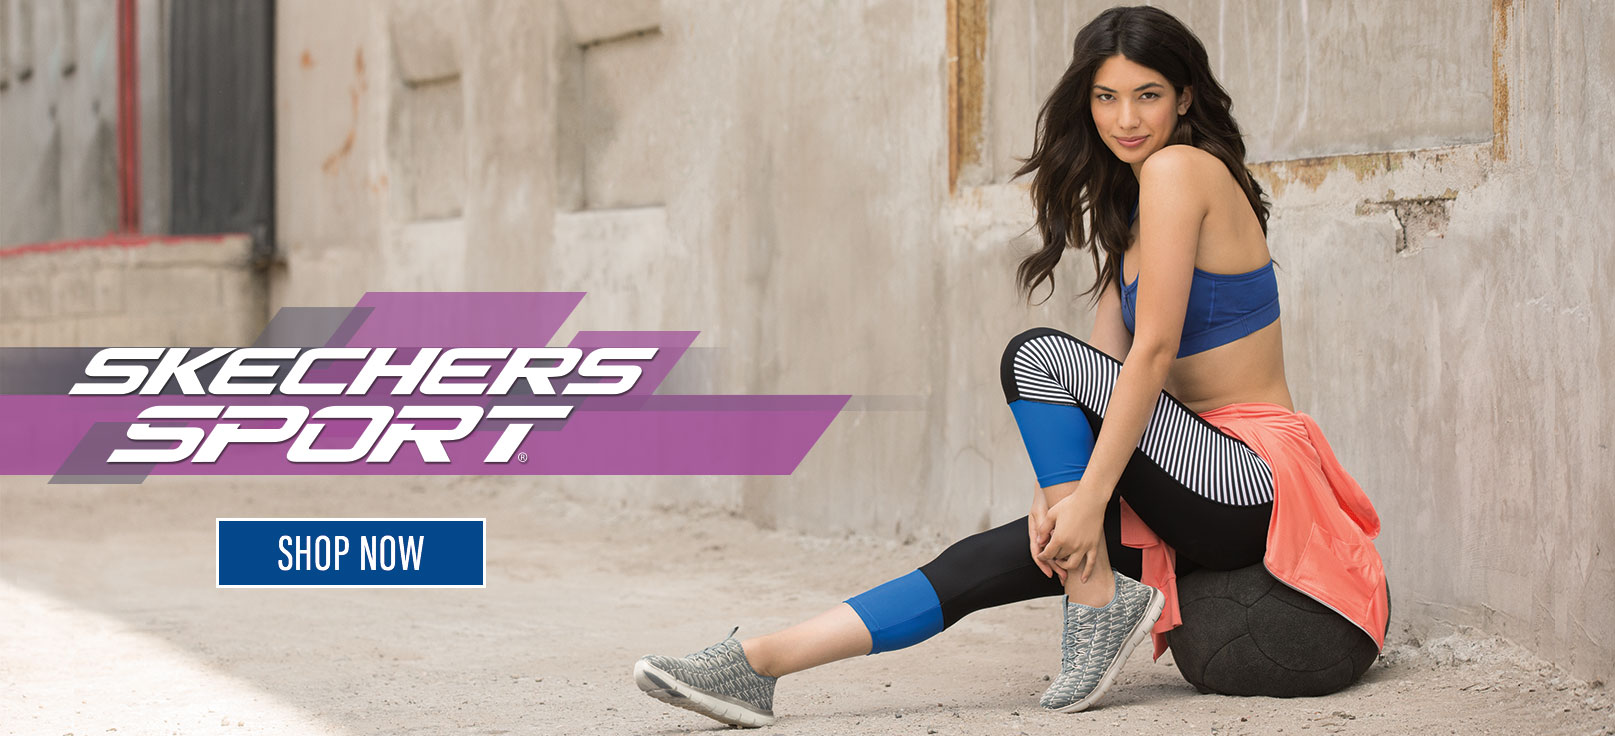 Shop Skechers.com for women including Boots, Memory Foam sneakers, sandals, women's casual shoes, women's athletic sport shoes, Skechers Originals and Air Cooled Memory Foam shoes.